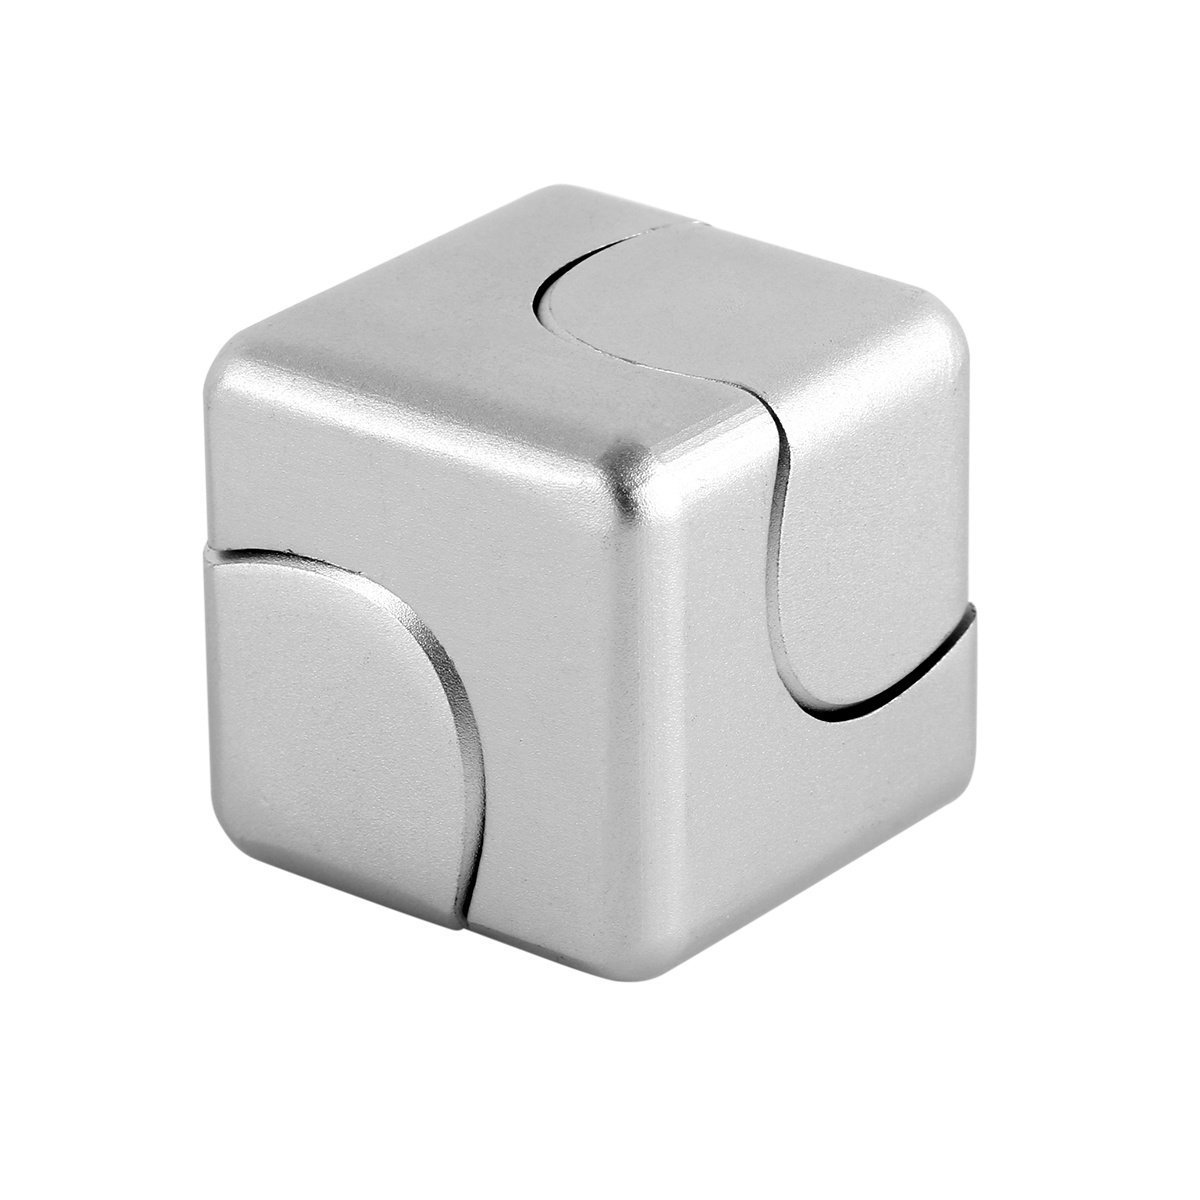 iSpnOmatic – Spinning Fidget Cube of Aerospace Grade Aluminium with Magnetic Support middle block fitted with Special R188 Steel Bearing comes in a Metallic Fidget Storage case for Stress Relief Fidget Toy (Silver Color) PCFX Americas